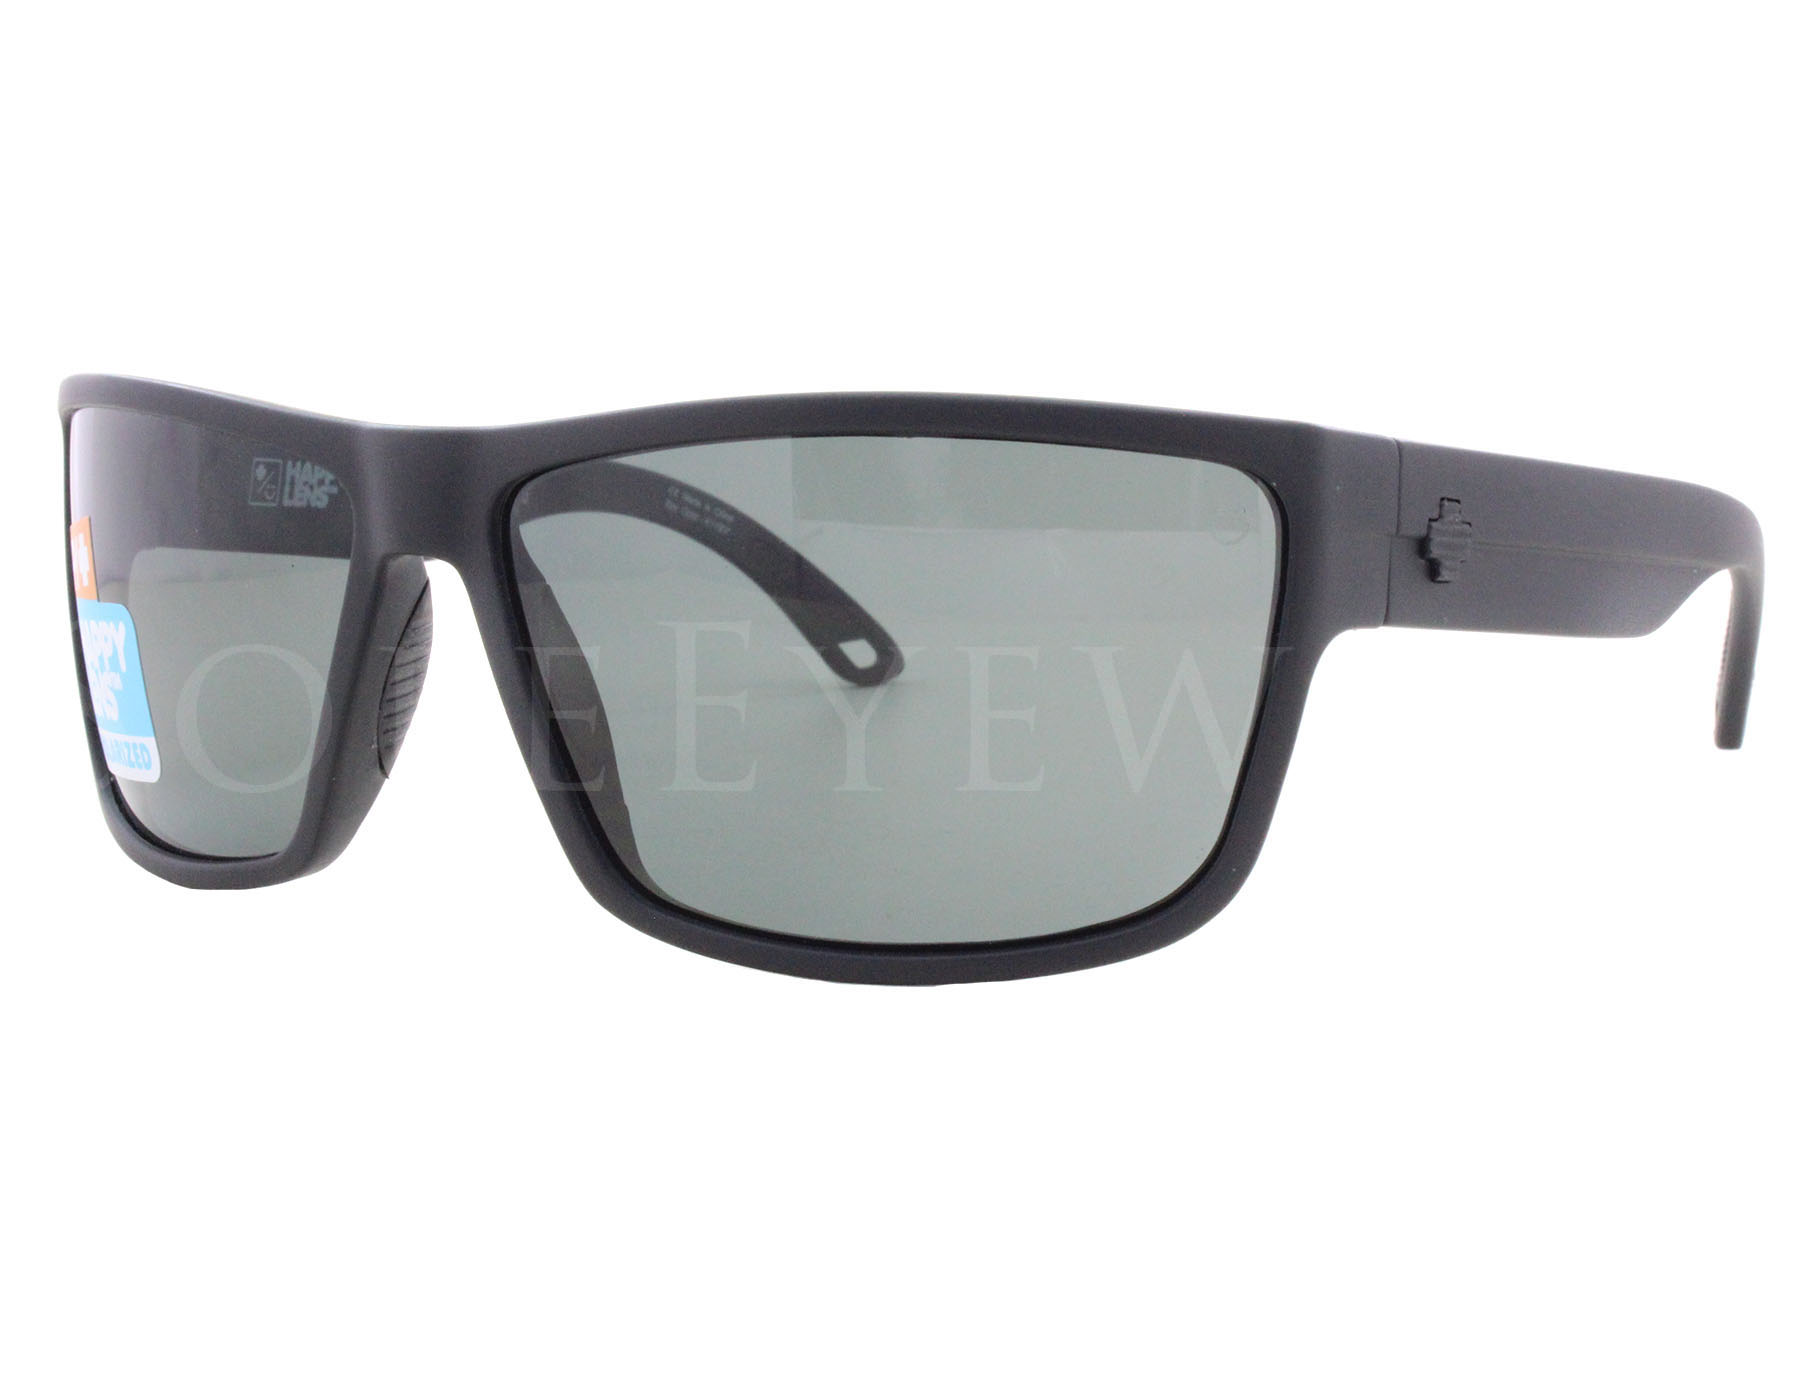 a2199518e4 Details about NEW Spy Optics Rocky 673248374864 Matte Black  Happy Gray  Green Polar Sunglasses